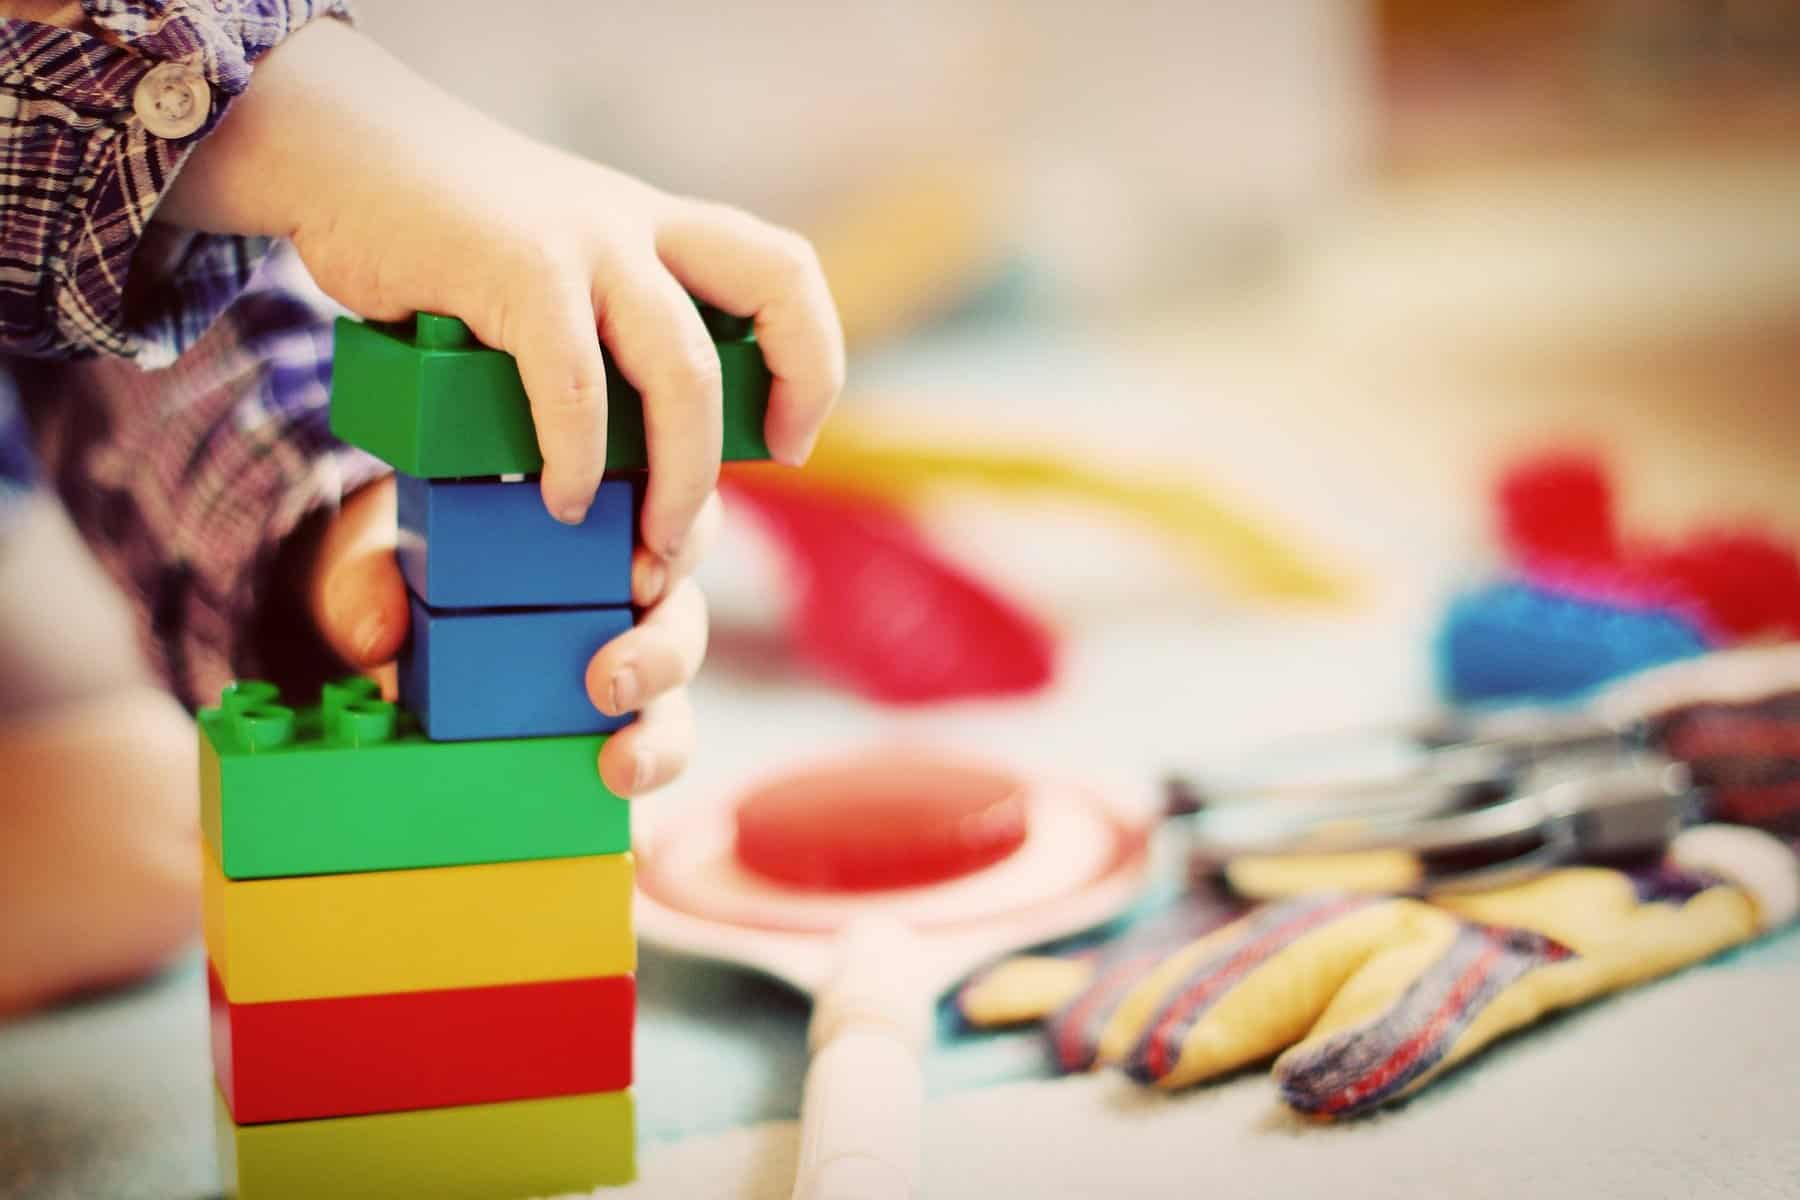 Colorful blocks stacked, child's hand in picture